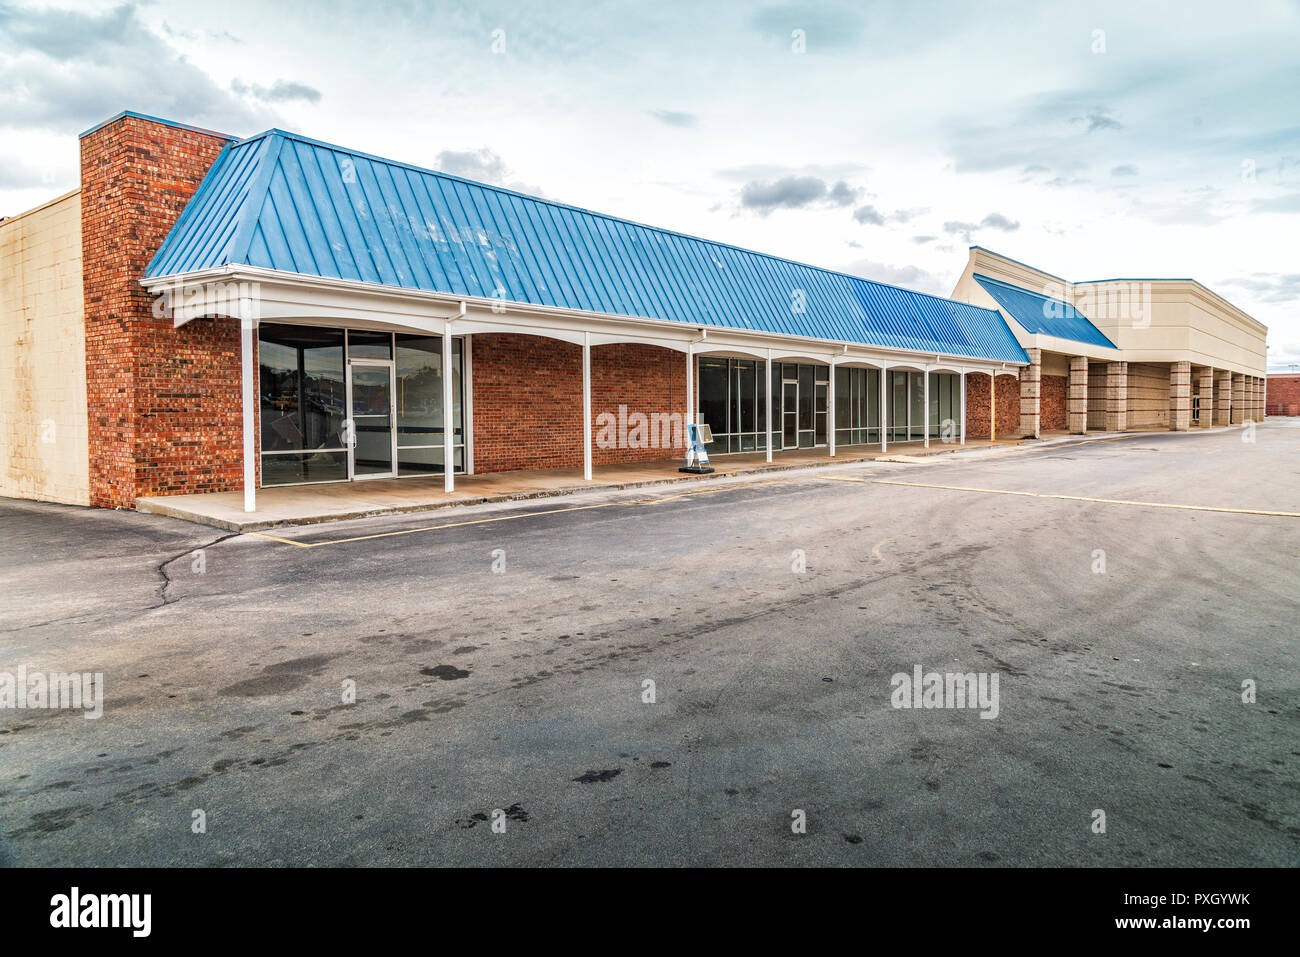 Horizontal shot of an old vacant stip shopping center with an empty parking lot and cloudy sky. - Stock Image